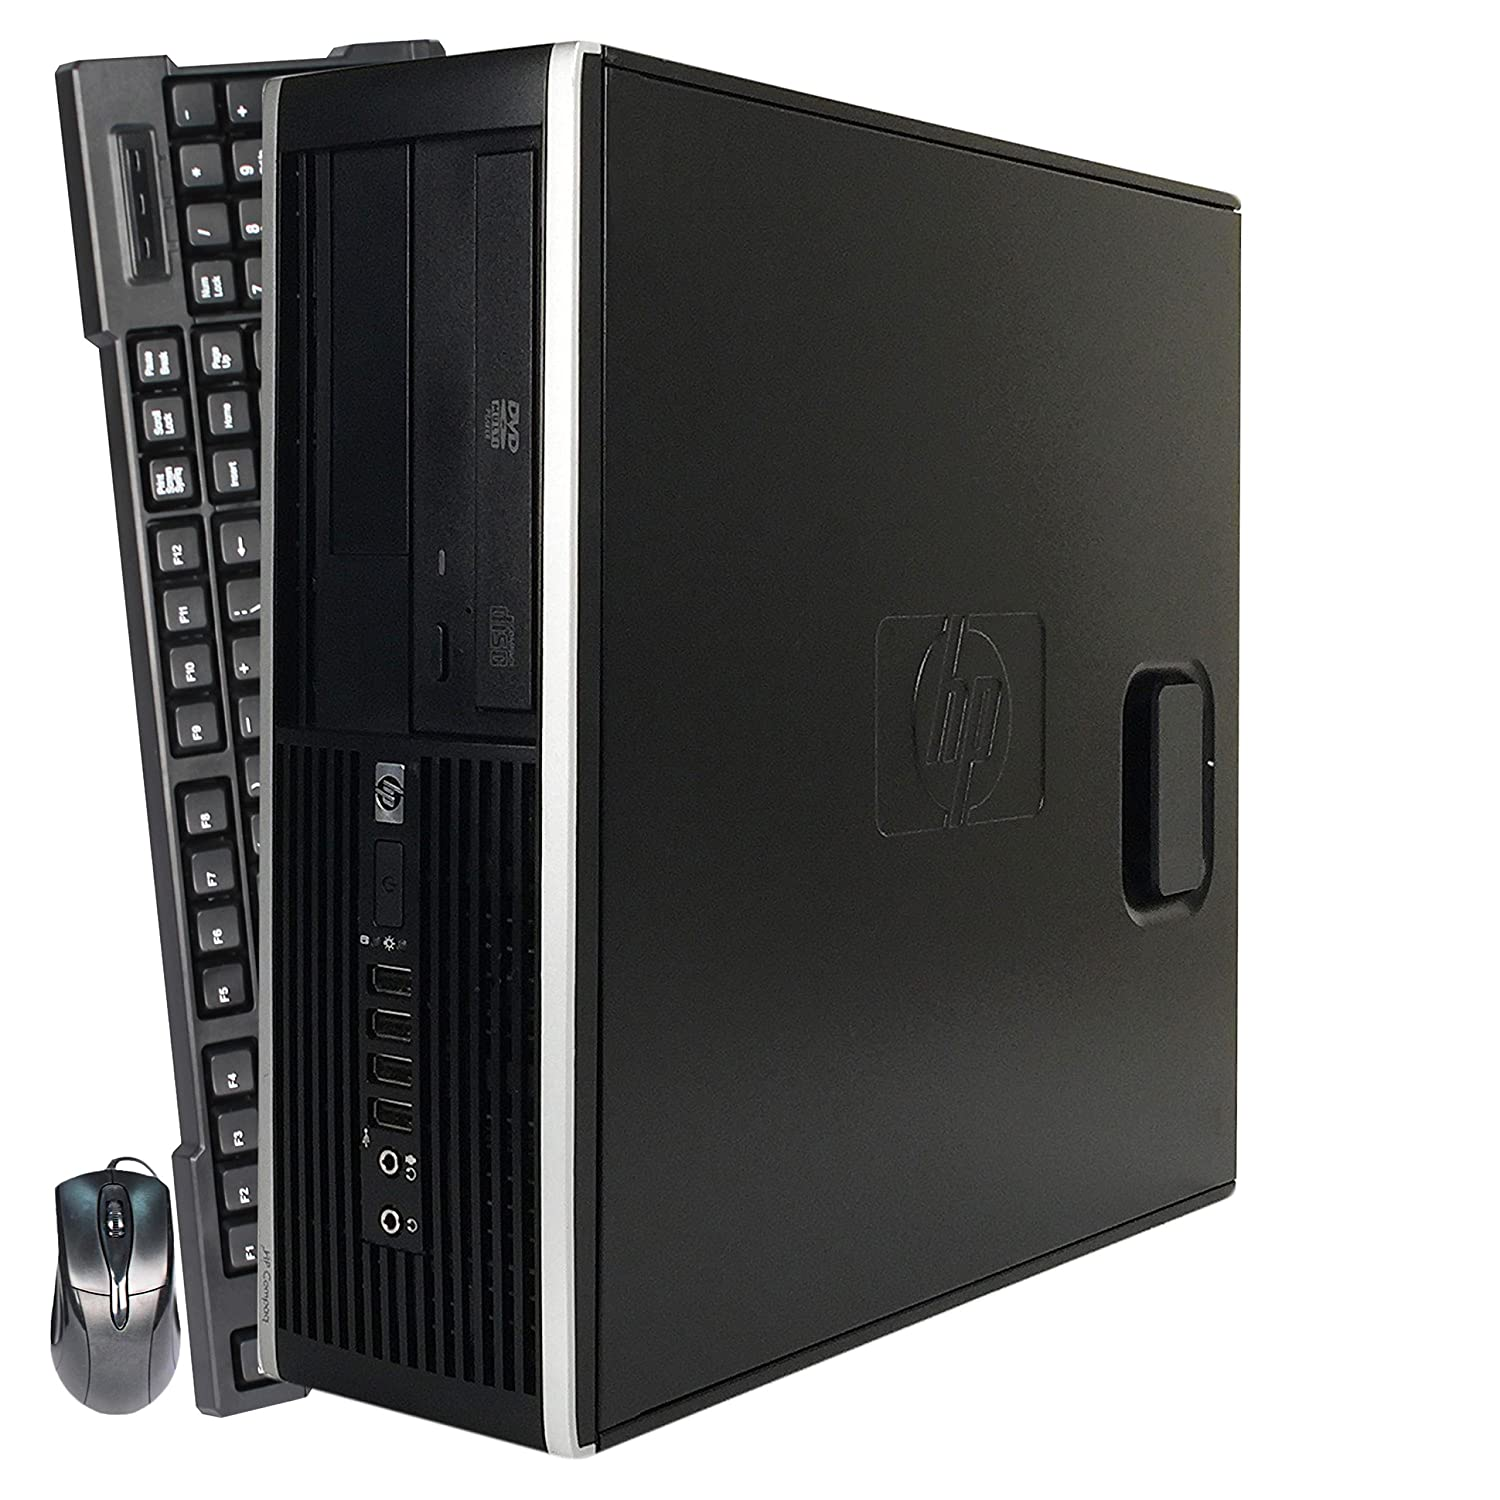 Hp Pro 6200 Small Business High Performance Desktop Laptop Repair Makati Computer Pc Intel Core I5 2400 31gb Quad Core6gb Ram Ddr3500gb Hdddvd Romwi Fidp To